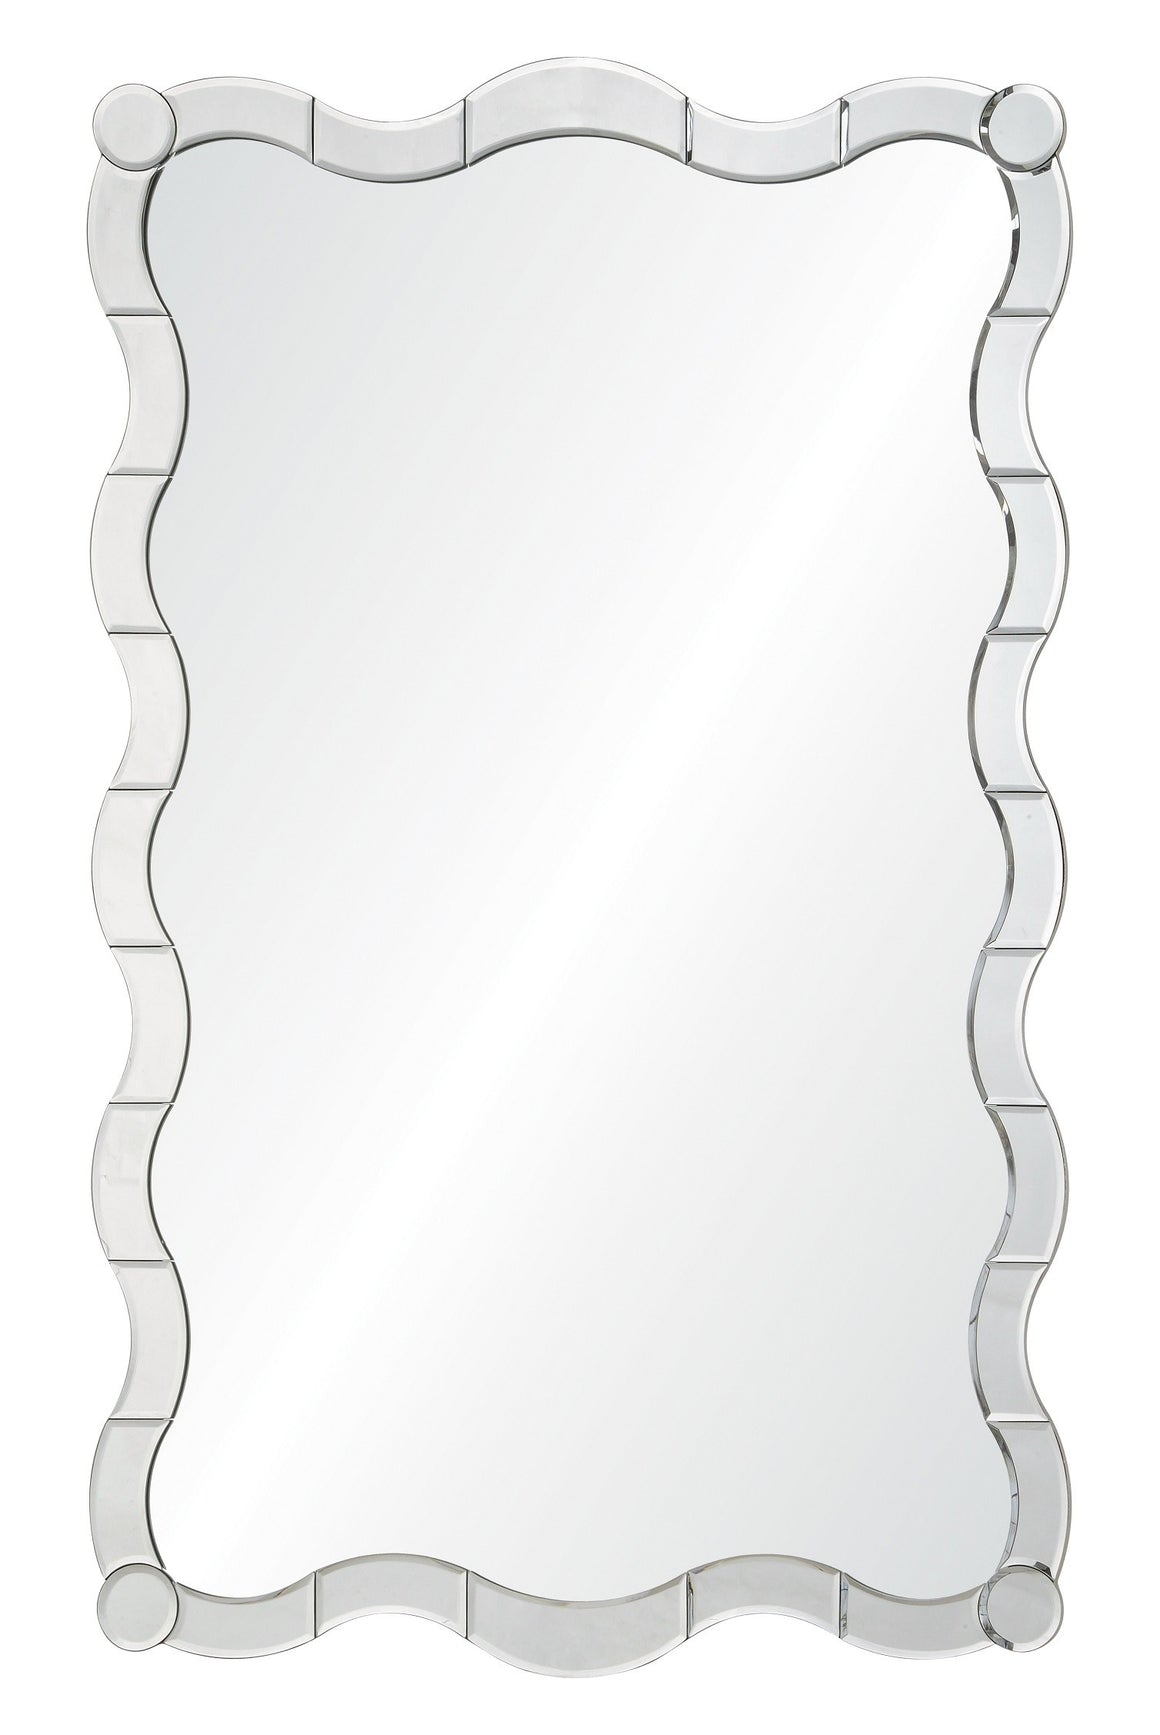 Jamie Drake for Mirror Image Home Cosmopolitan Silver Leaf Mirror